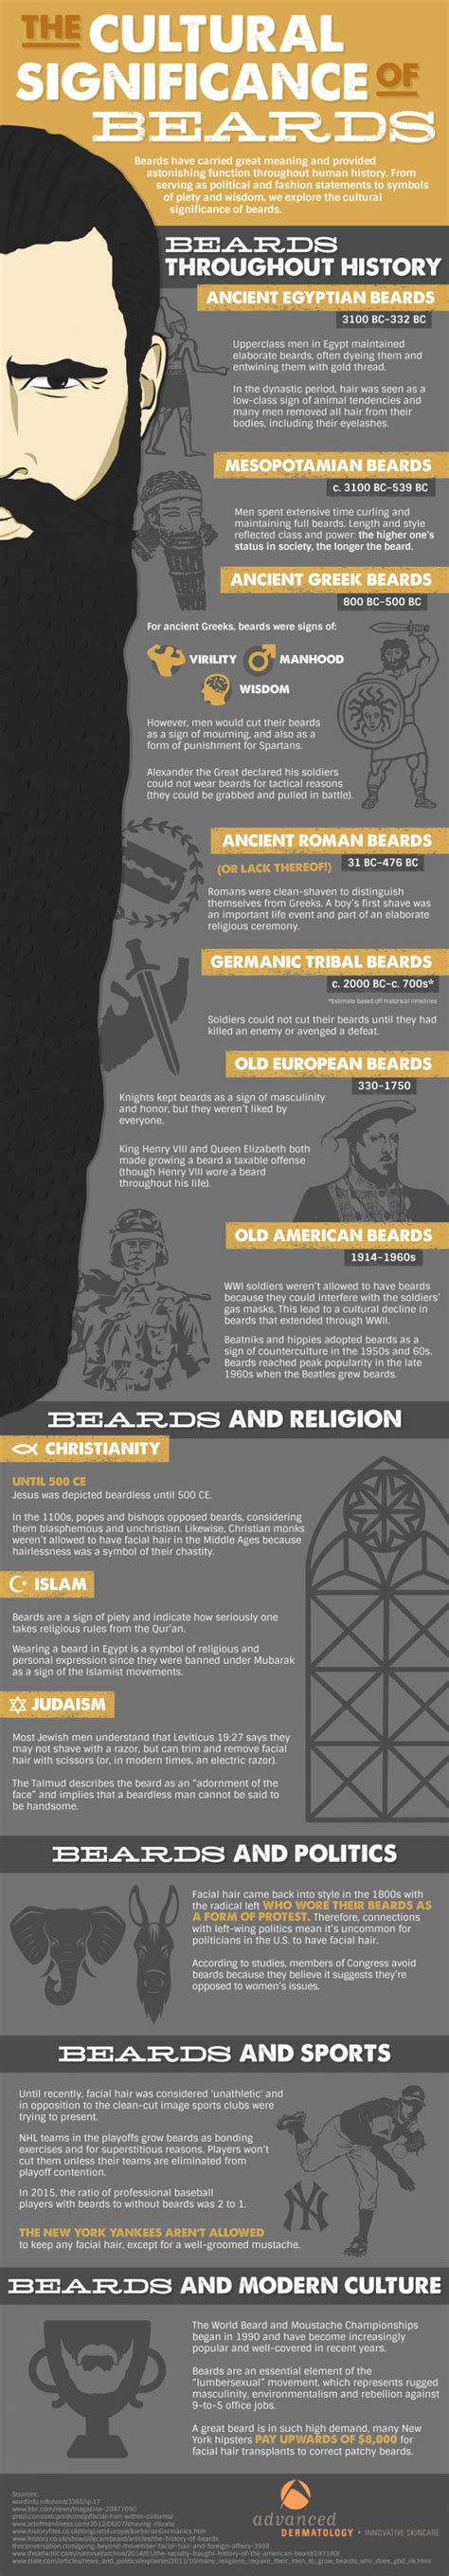 historic meaning 28 images historical meaning the the significance of beards throughout history infographic